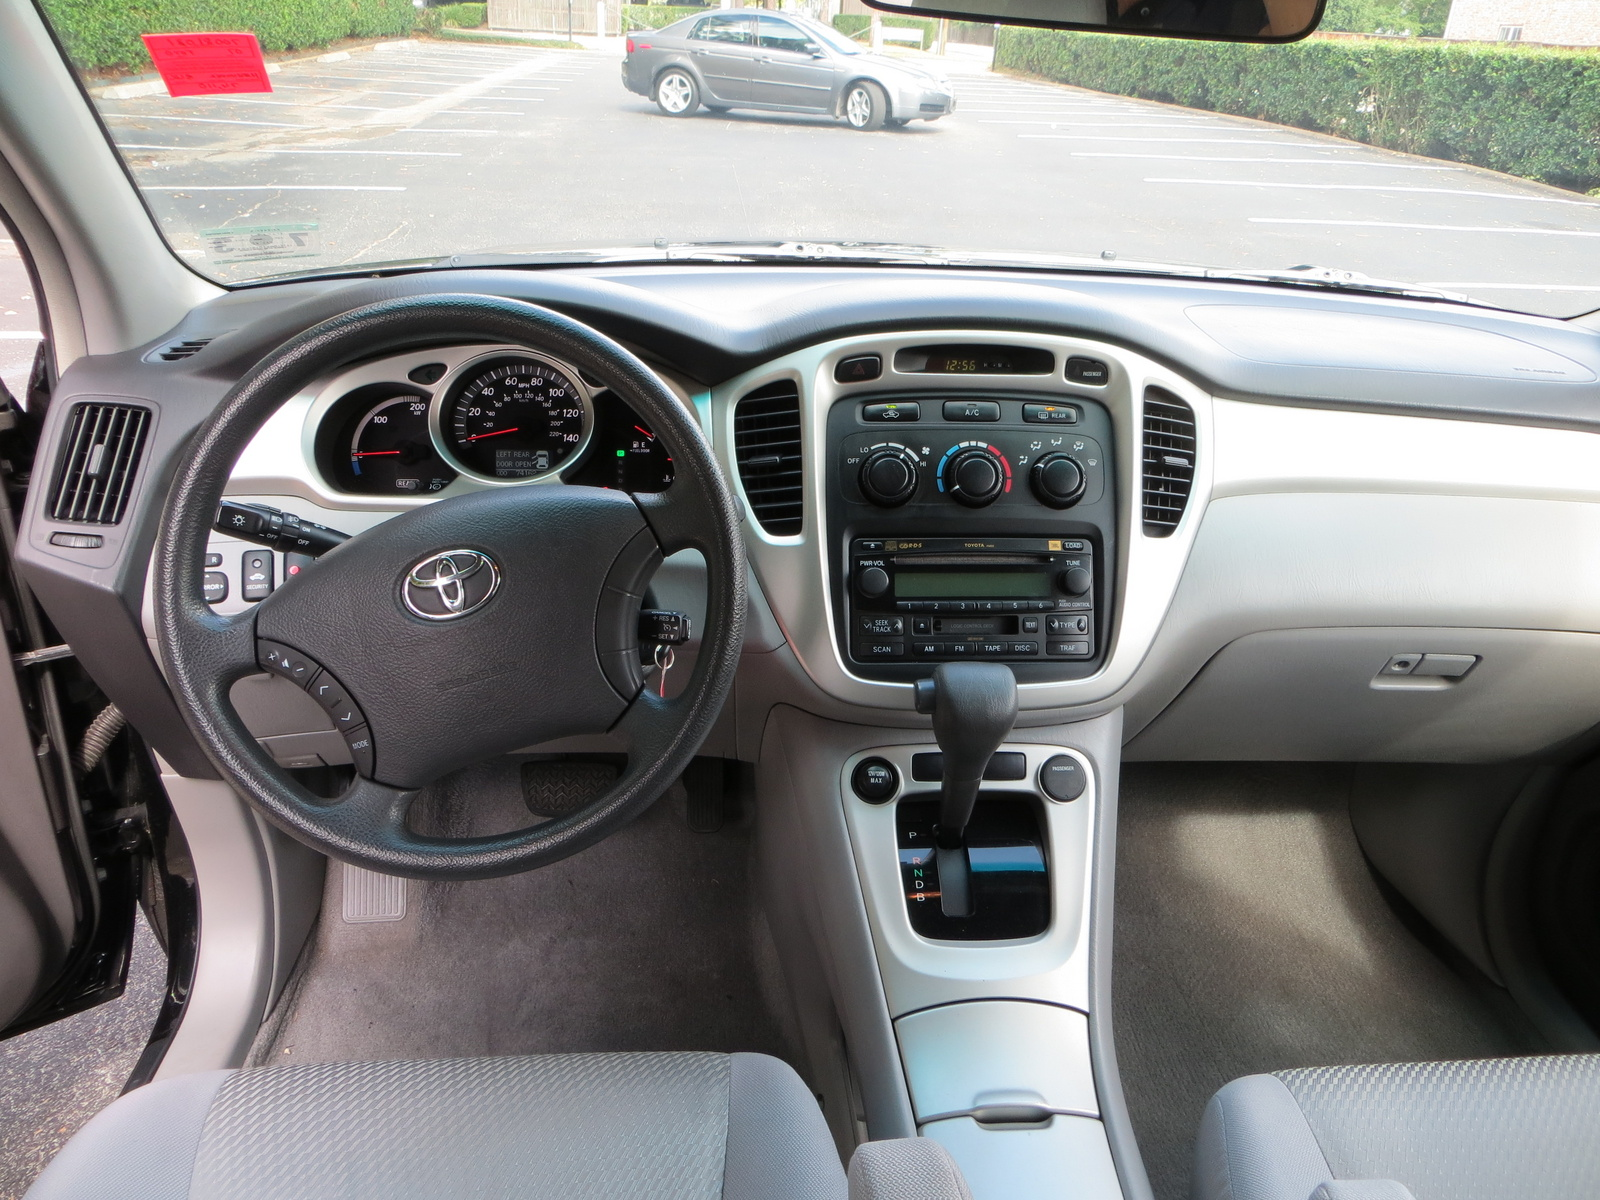 2007 toyota highlander hybrid pictures cargurus. Black Bedroom Furniture Sets. Home Design Ideas